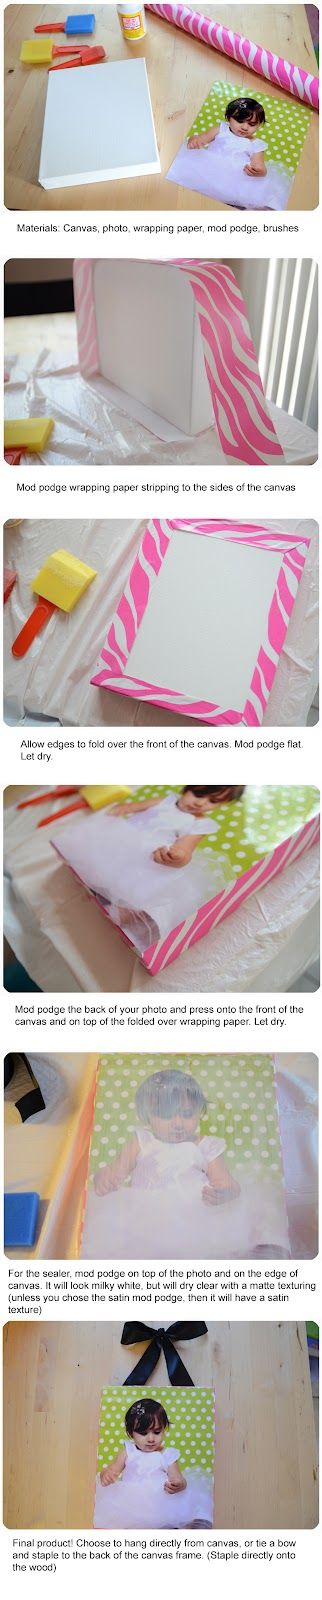 DIY Canvas Photo - Will be trying this!: